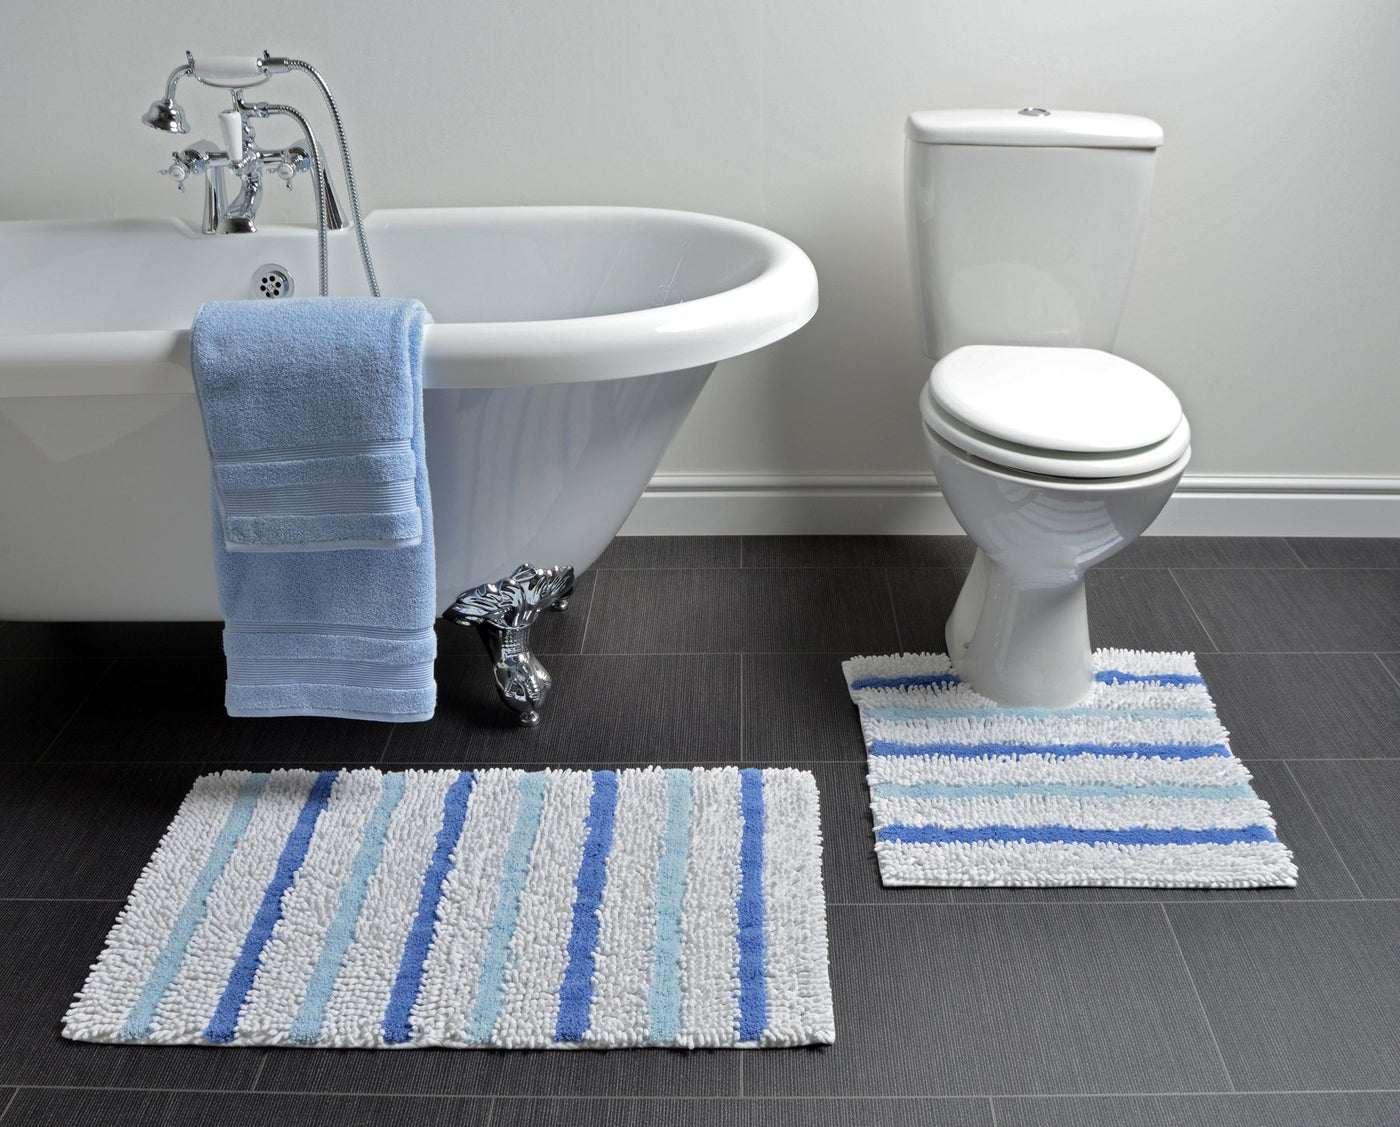 2 piece bath mat sets - blue striped